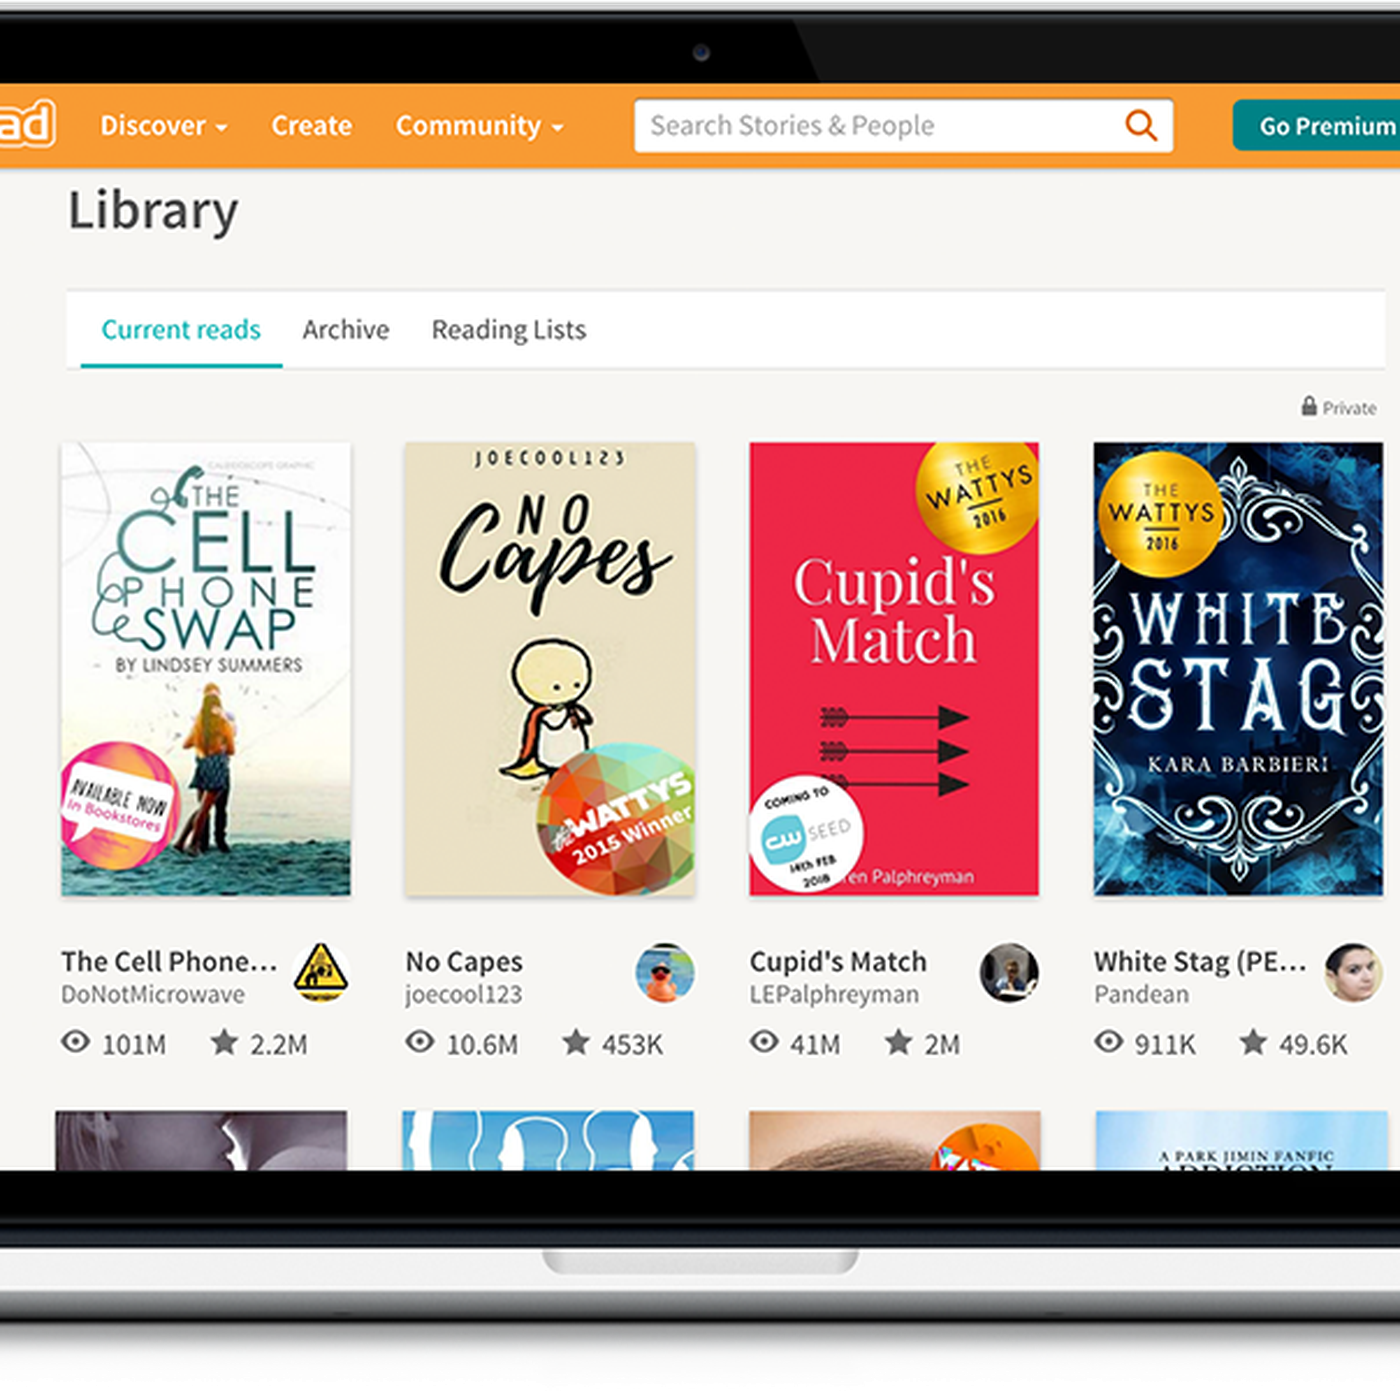 Digital publishing site Wattpad is partnering with Sony to